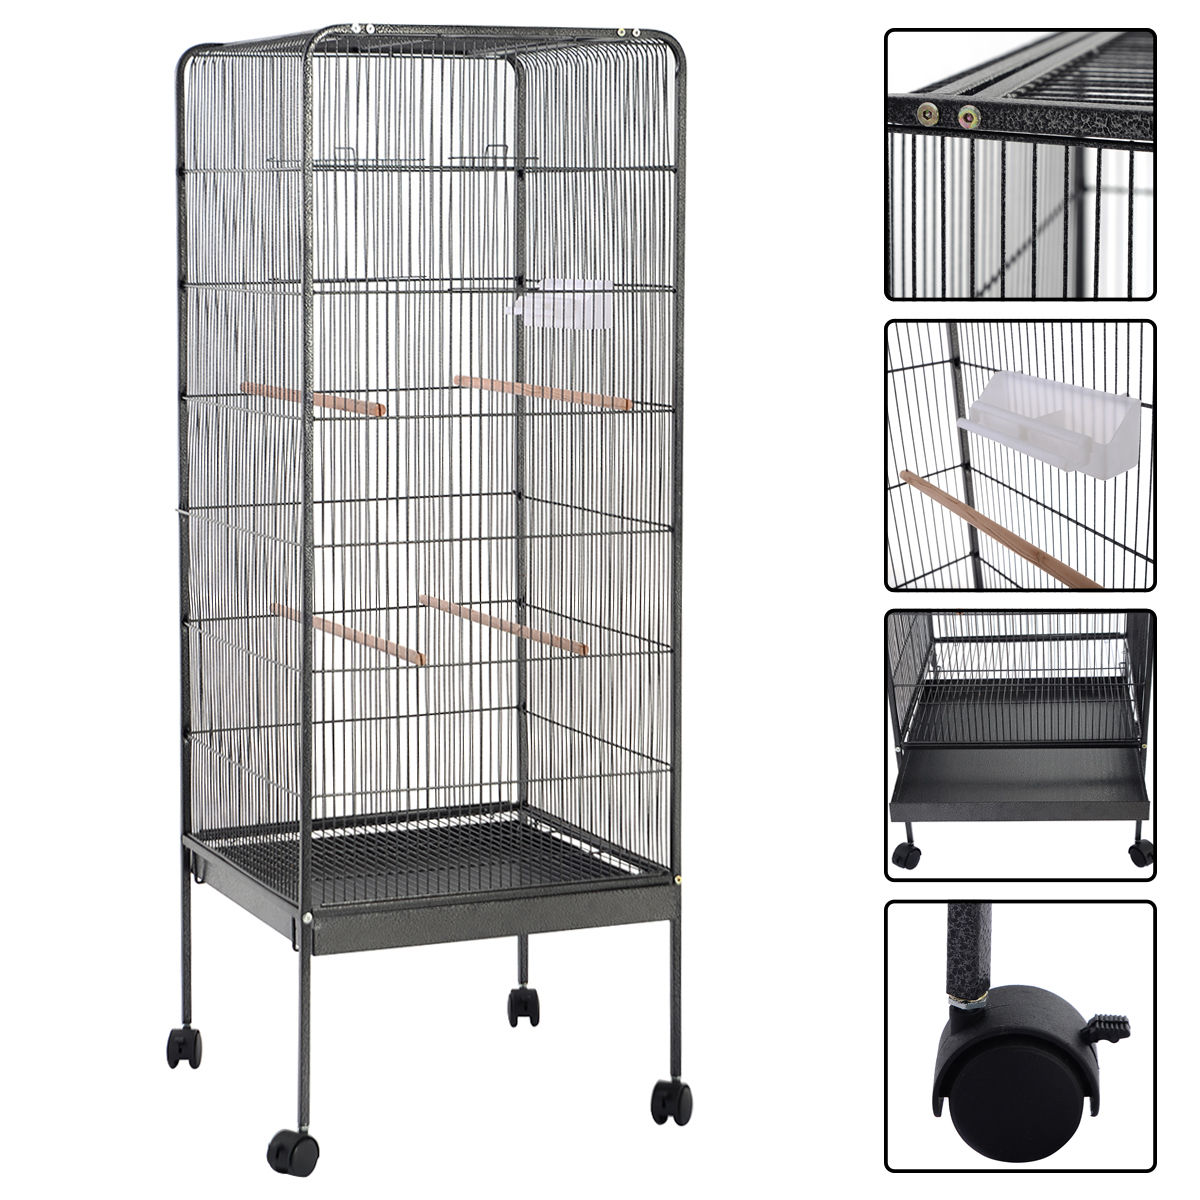 Costway 58'' Large Parrot Play Top Bird Cage w/ Perch Stand, Two Doors & Flattop